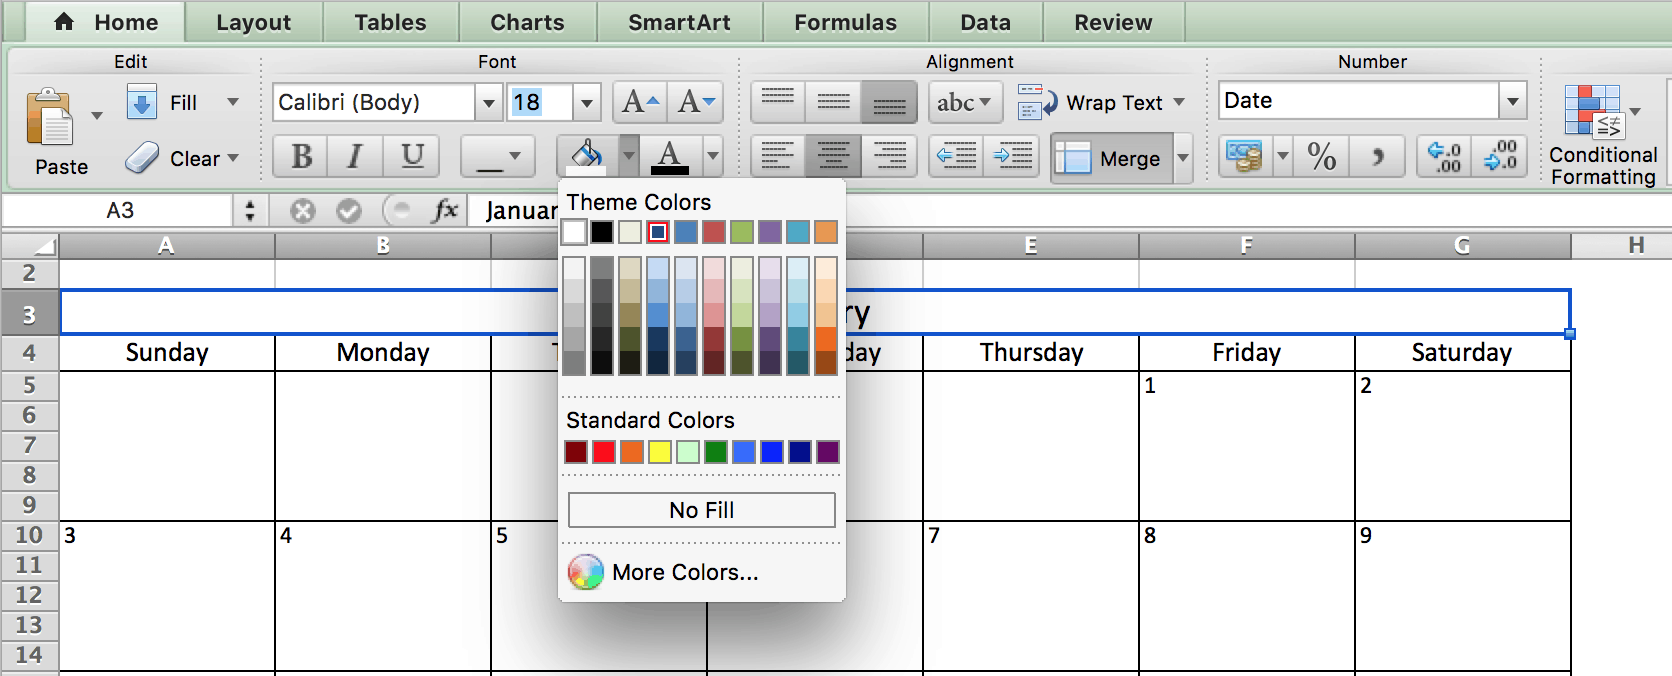 Ediblewildsus  Unusual Make A  Calendar In Excel Includes Free Template With Entrancing Choosing Colors  Calendar In Excel With Endearing Excel Axis Options Also Extract Text Excel In Addition Bridge Chart Excel And How To Pivot Data In Excel As Well As Advanced Filtering Excel Additionally Free Project Plan Template Excel From Smartsheetcom With Ediblewildsus  Entrancing Make A  Calendar In Excel Includes Free Template With Endearing Choosing Colors  Calendar In Excel And Unusual Excel Axis Options Also Extract Text Excel In Addition Bridge Chart Excel From Smartsheetcom